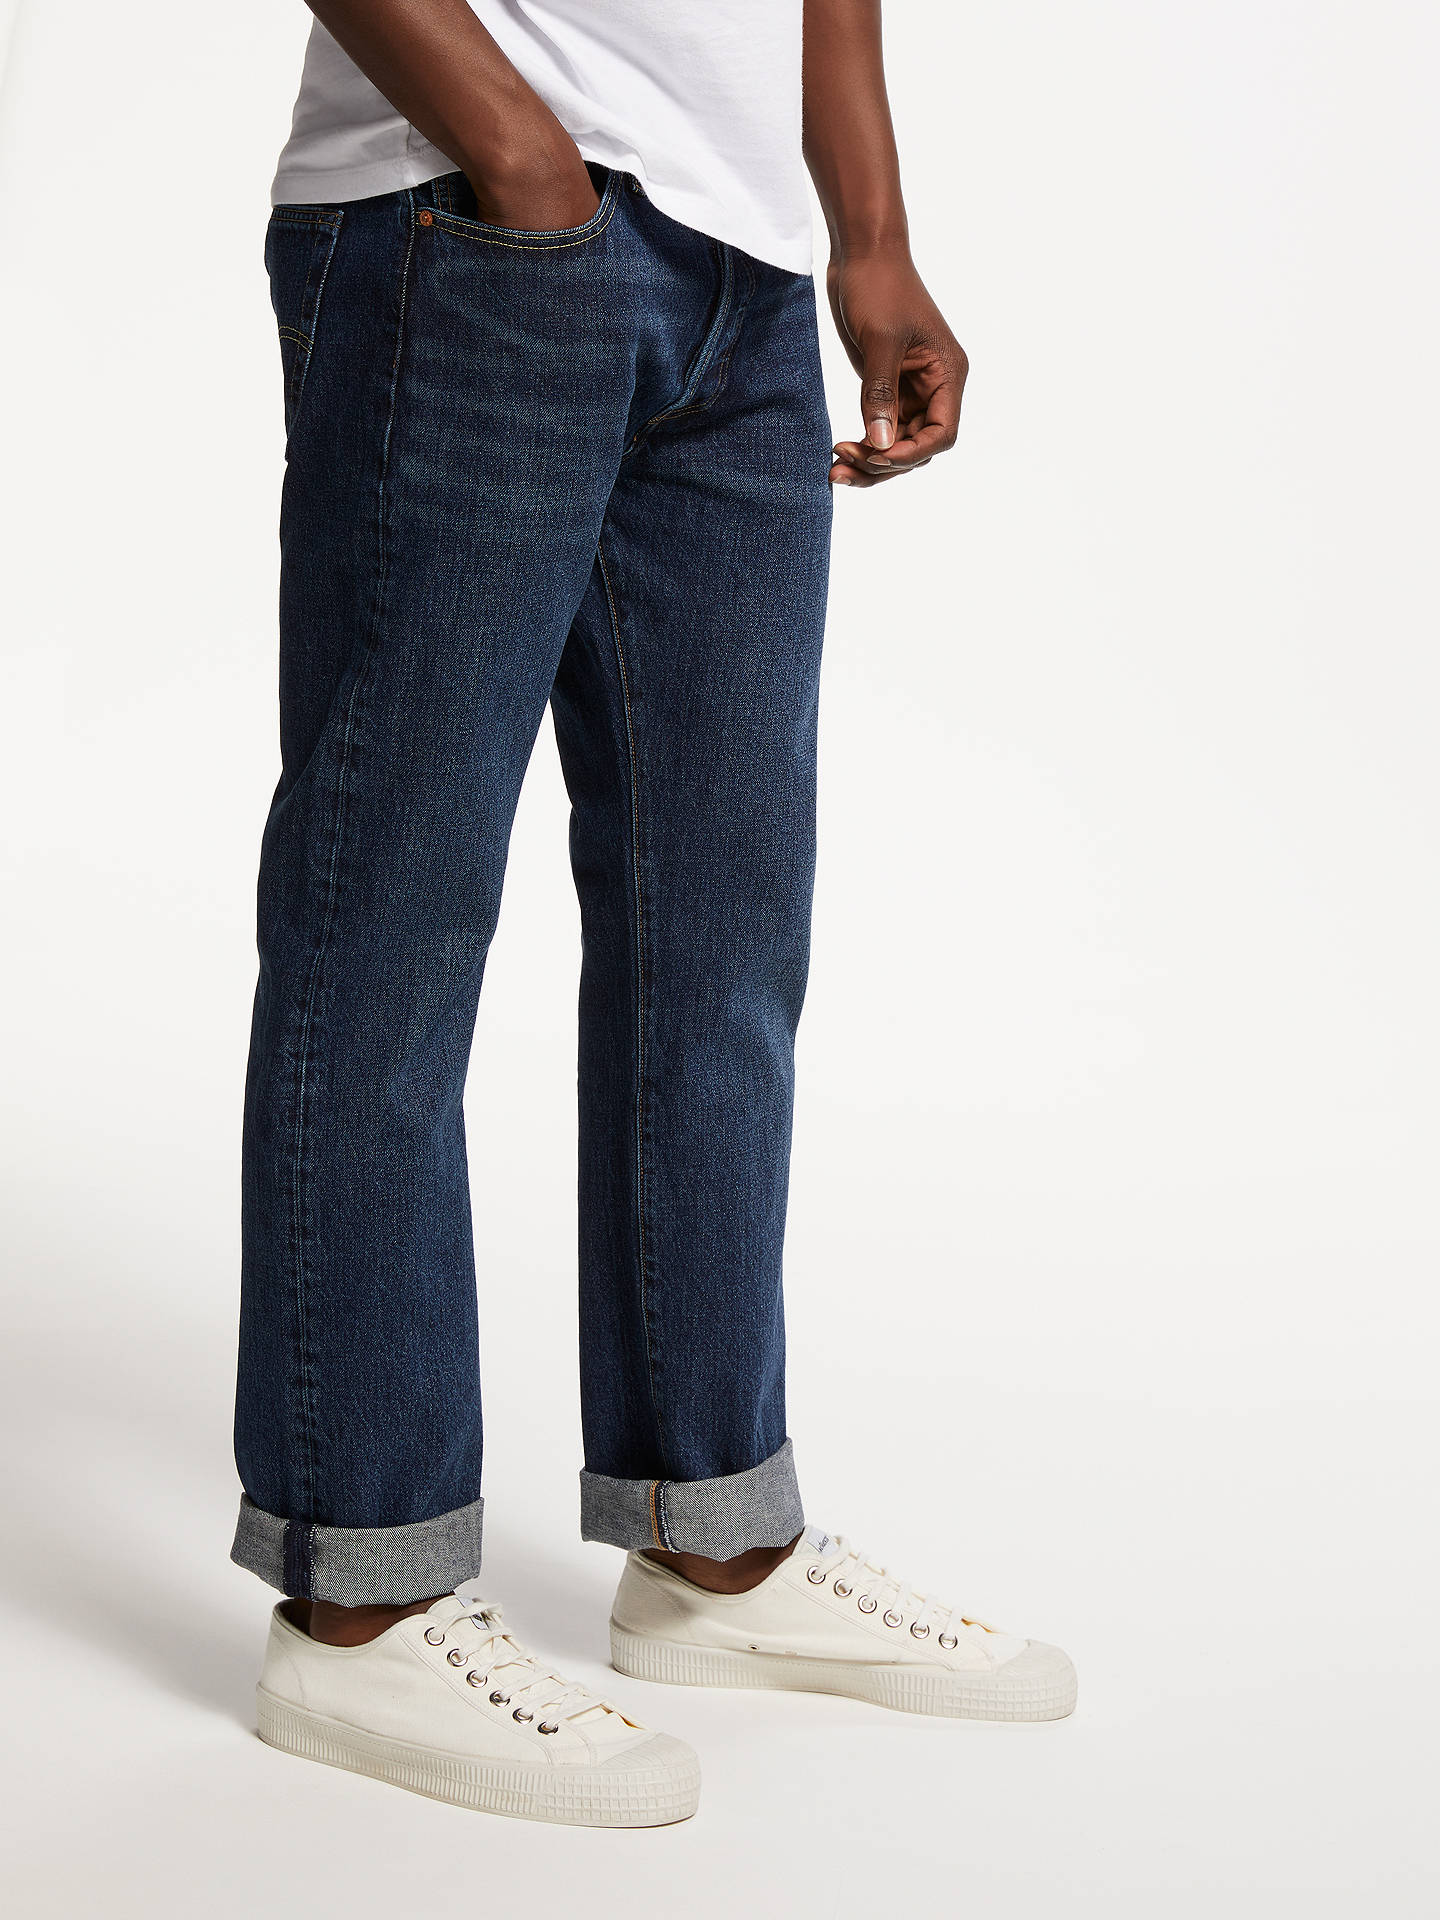 5063bcf1 Buy Levi's 501 Original Straight Jeans, Luther Blue, 30S Online at  johnlewis. ...